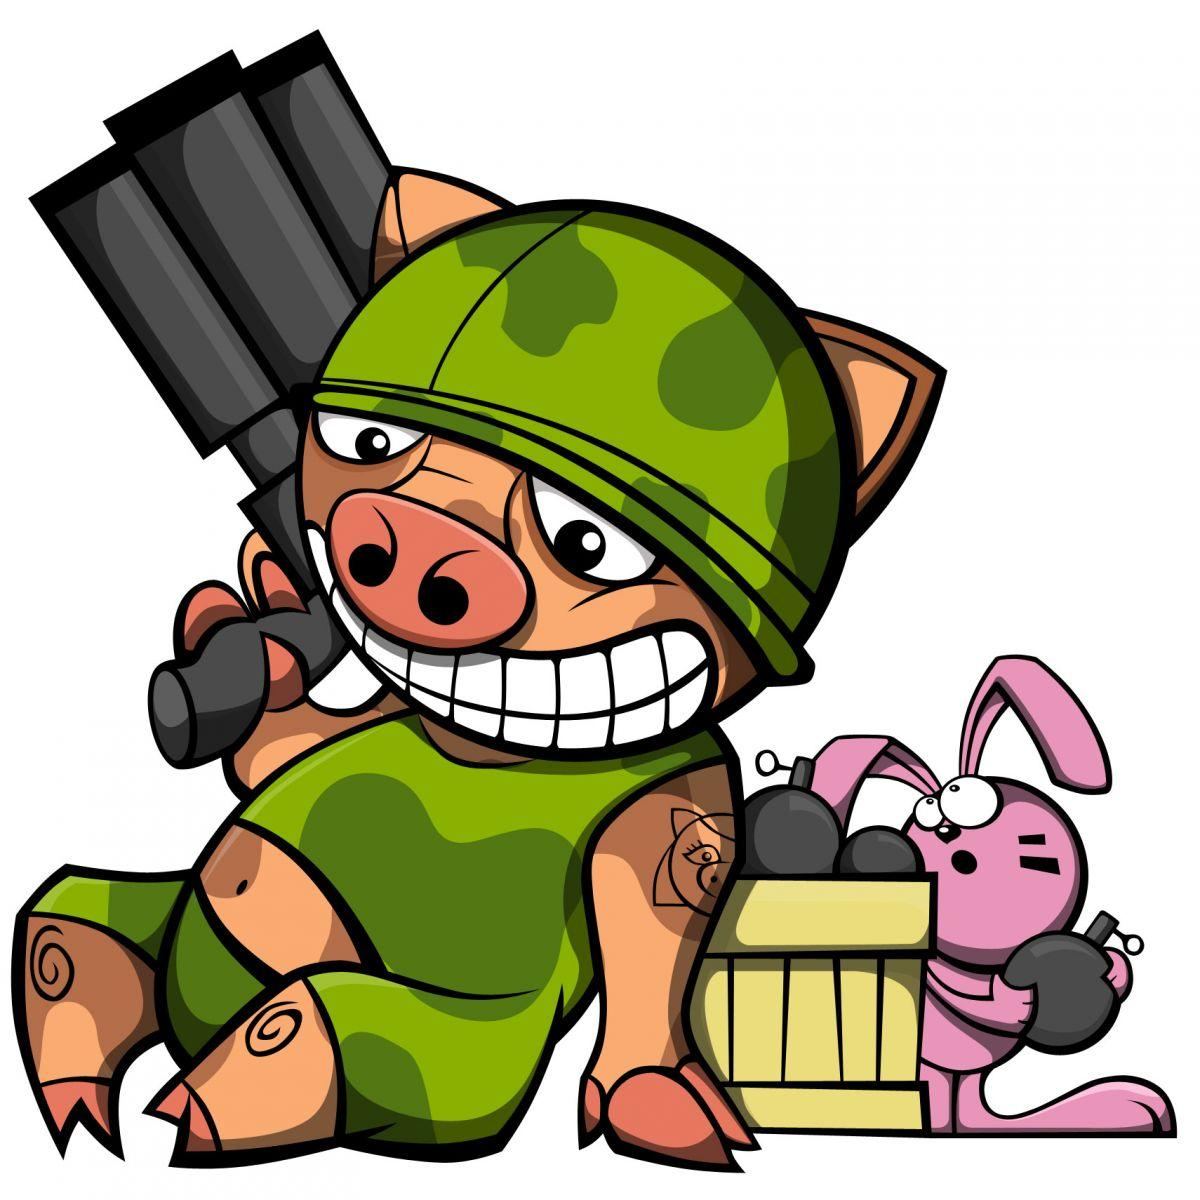 Pig and Bunny with bomb